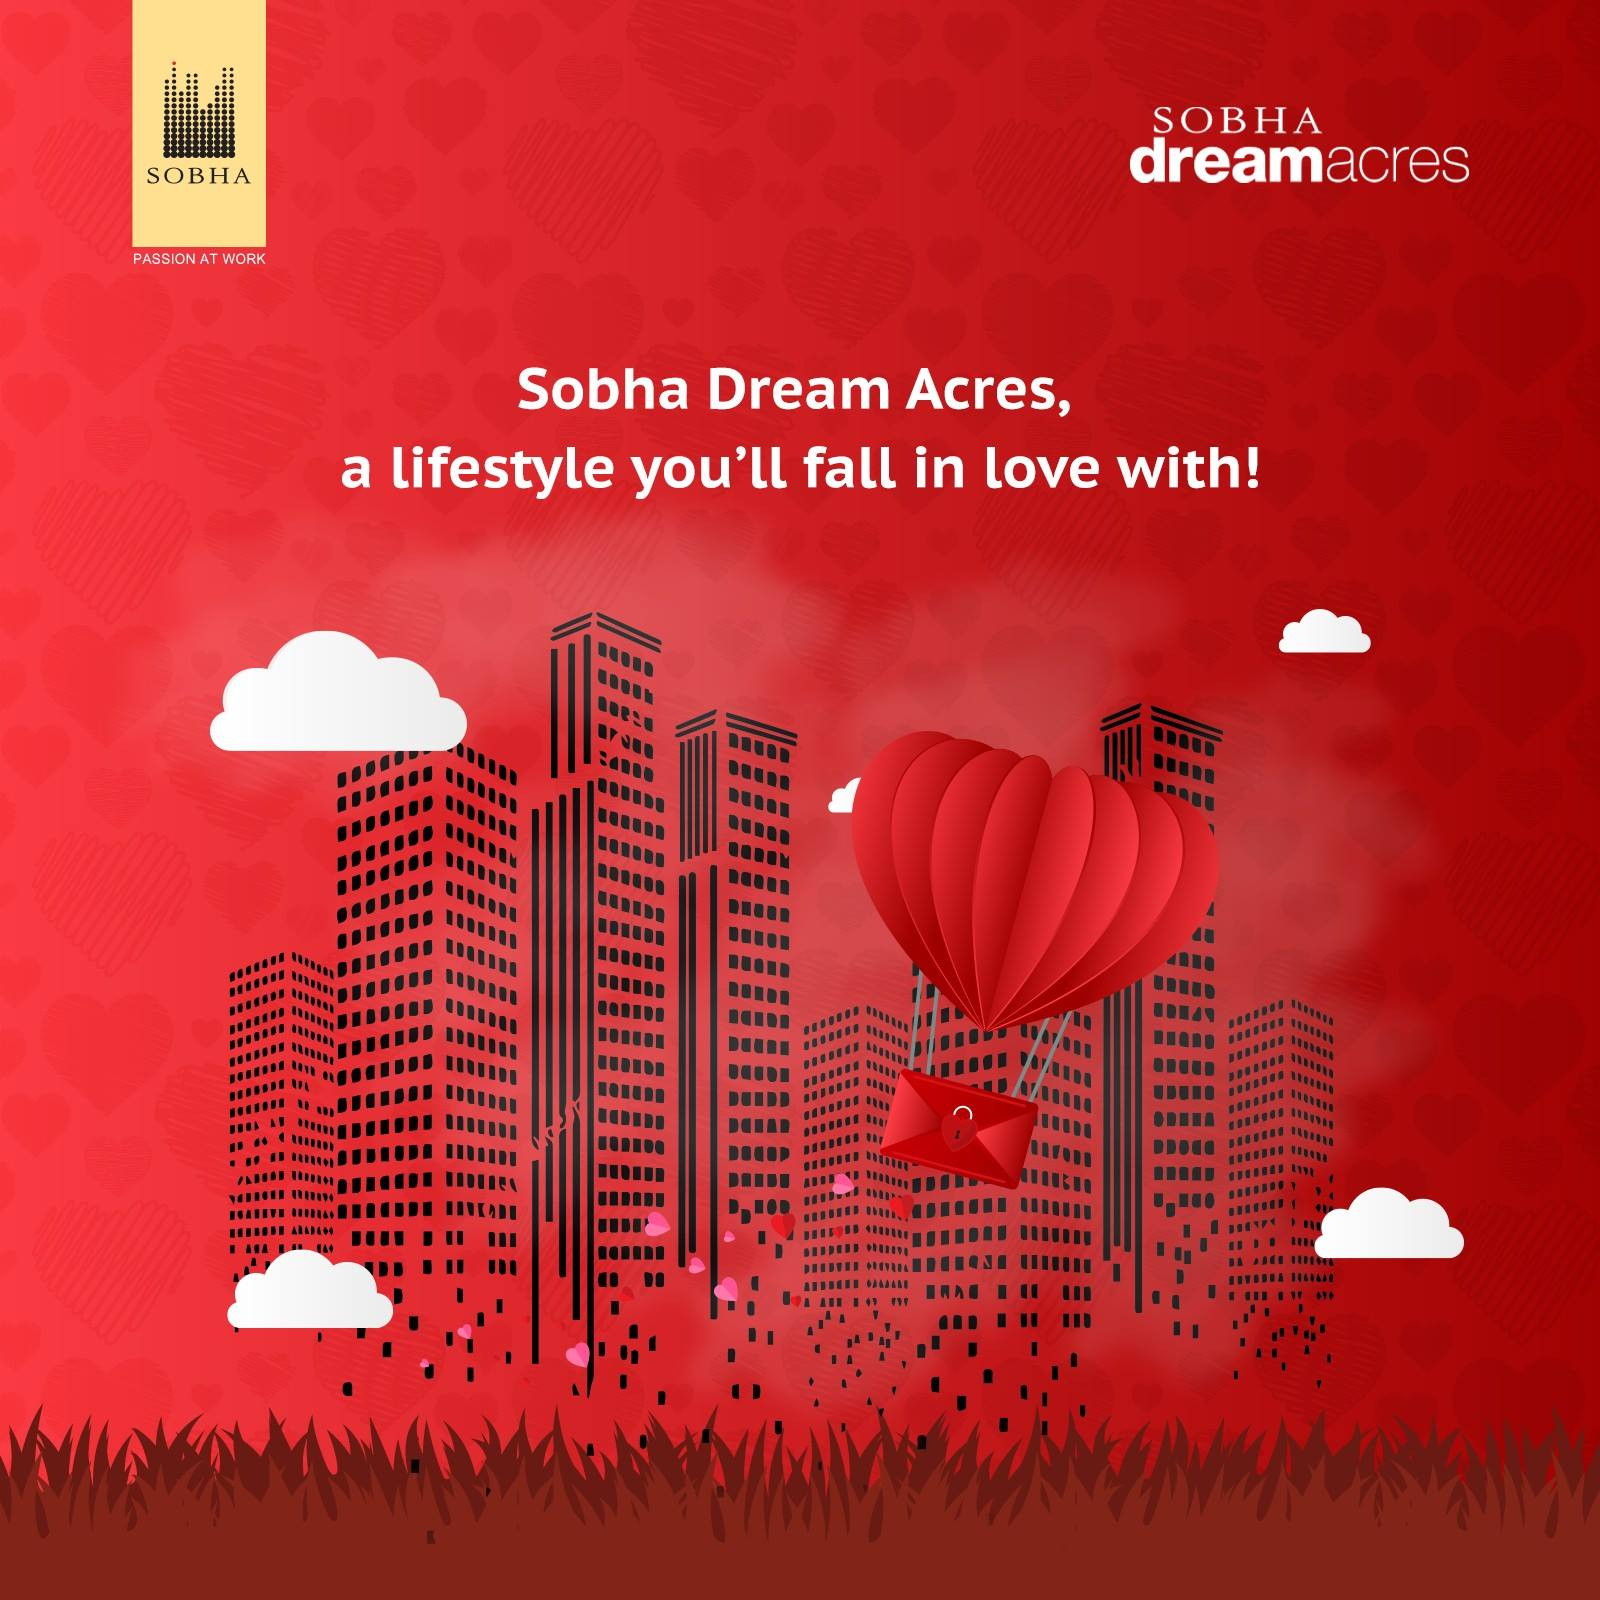 Residential flats - Sobhadream acres